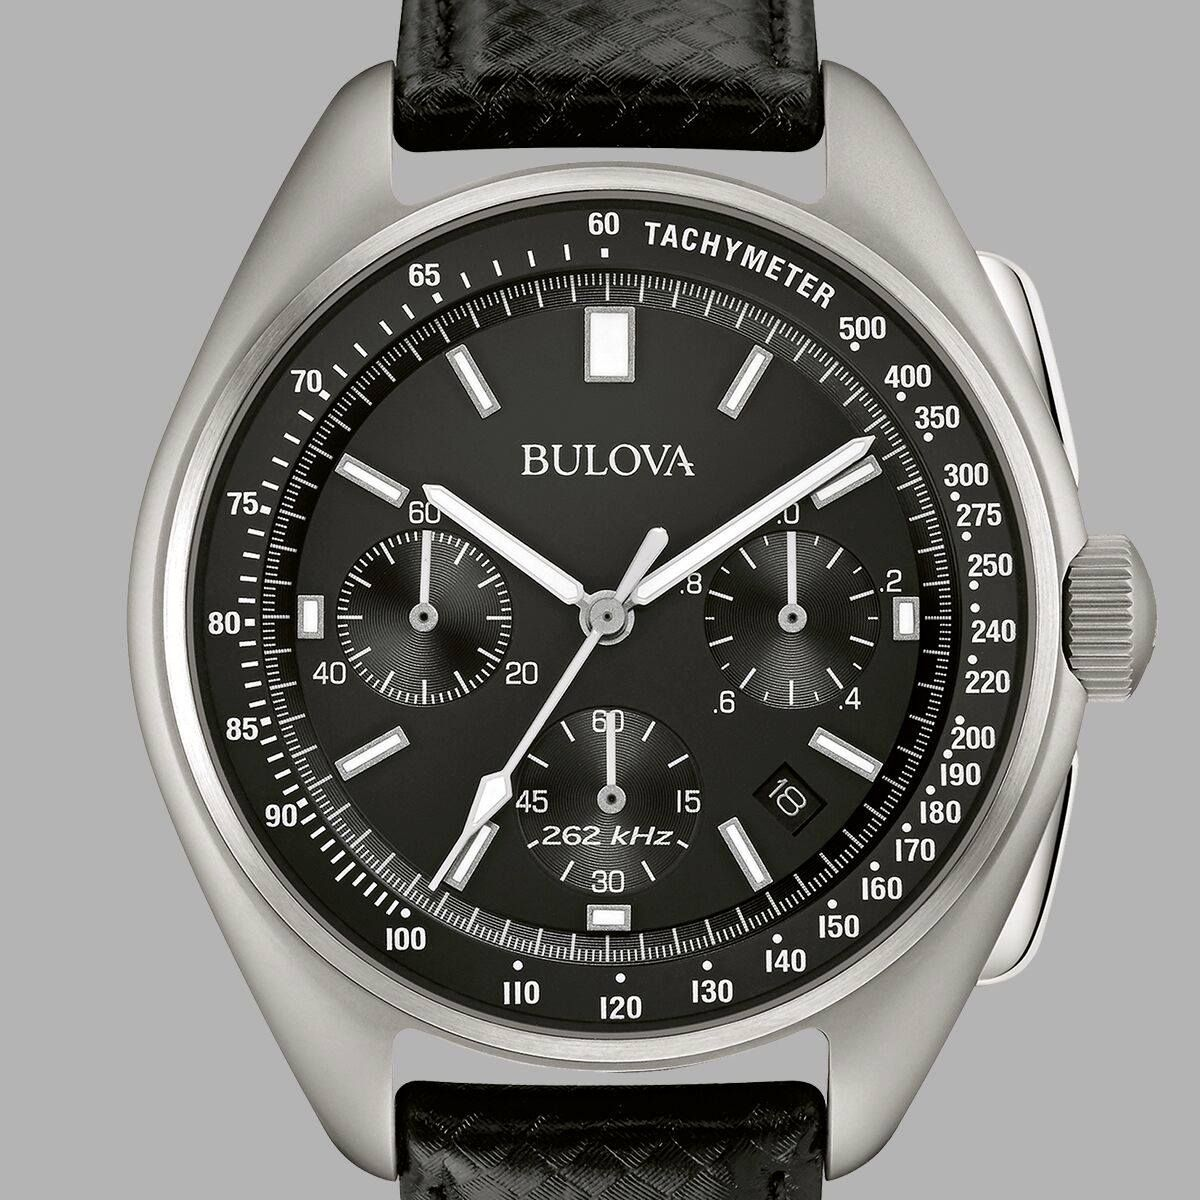 Gifts For Him The Lunar Pilot Chronograph From Bulova 96b251 Fine Jewelry Stores Gifts For Him Jewelry Stores